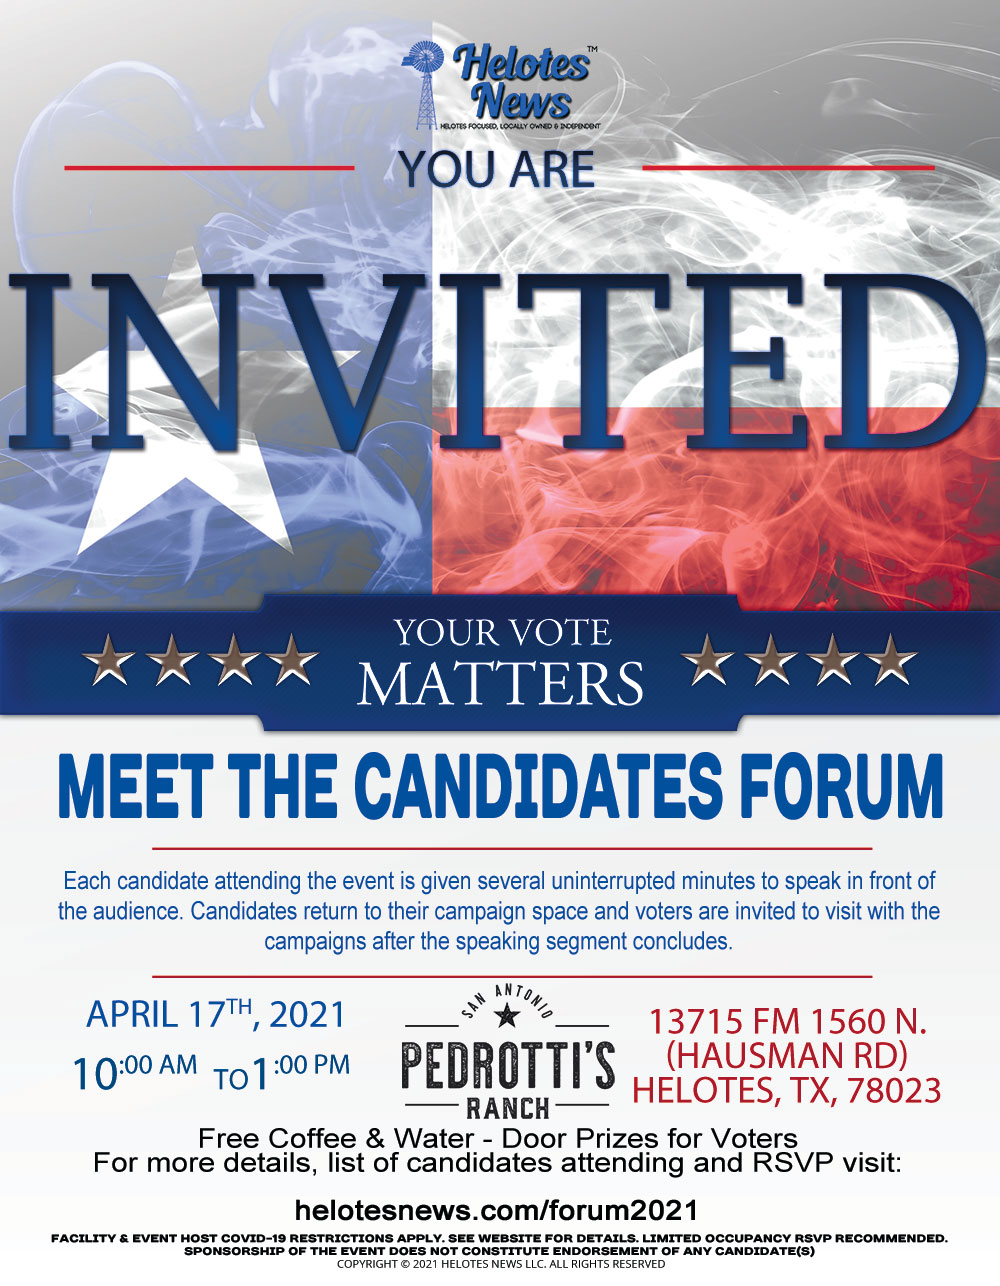 Meet the Candidates Forum Flyer Save-the-Date 2021 04 16